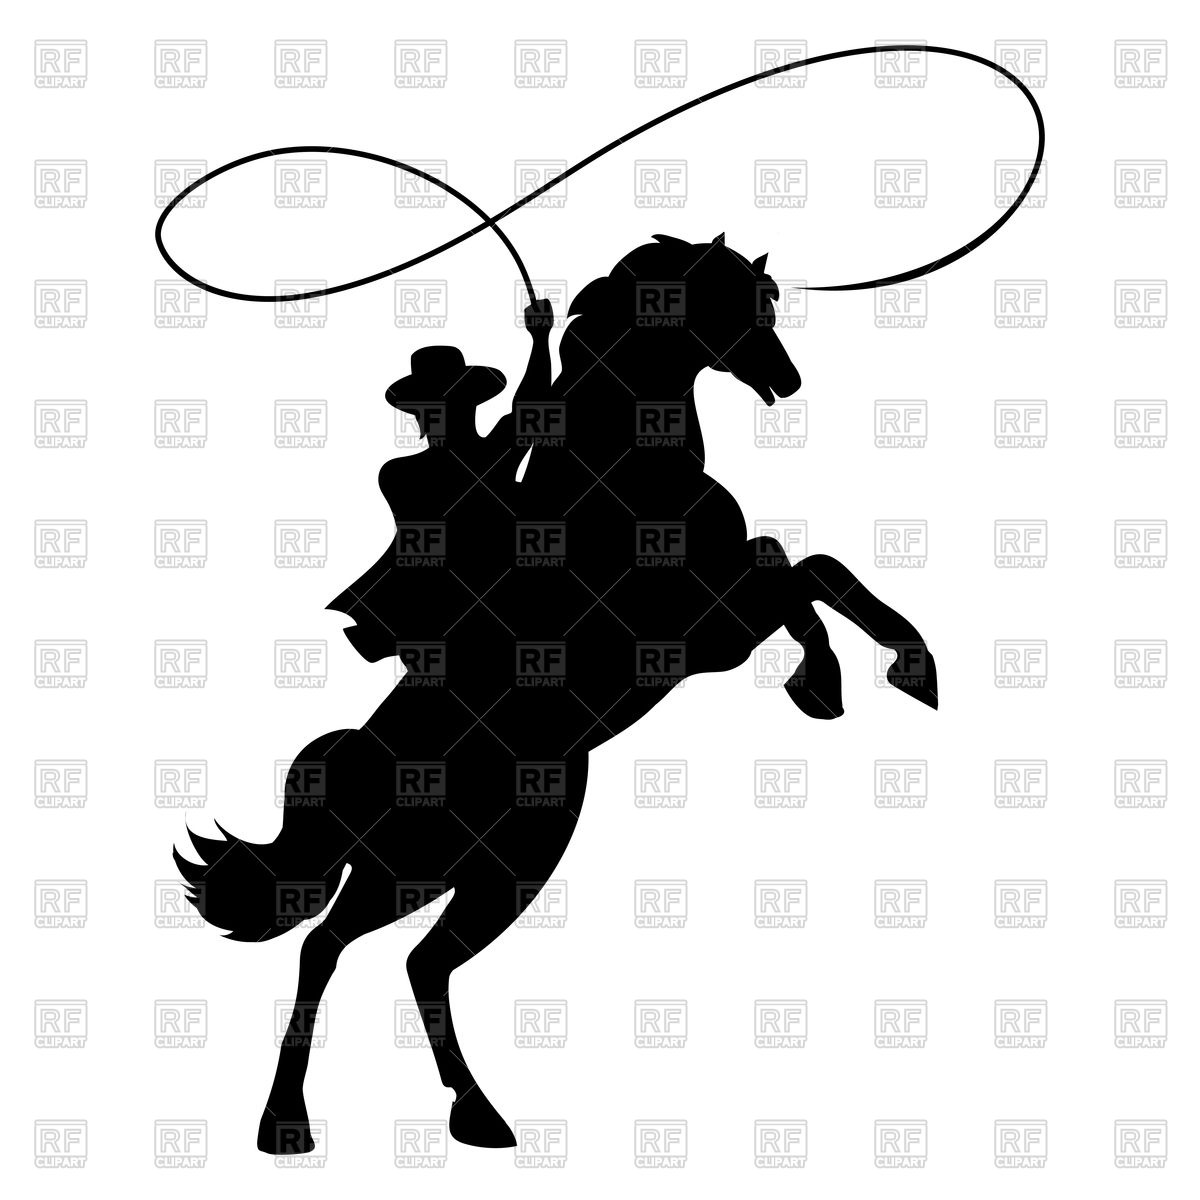 Cowboy silhouette with rope lasso on horse Stock Vector Image.